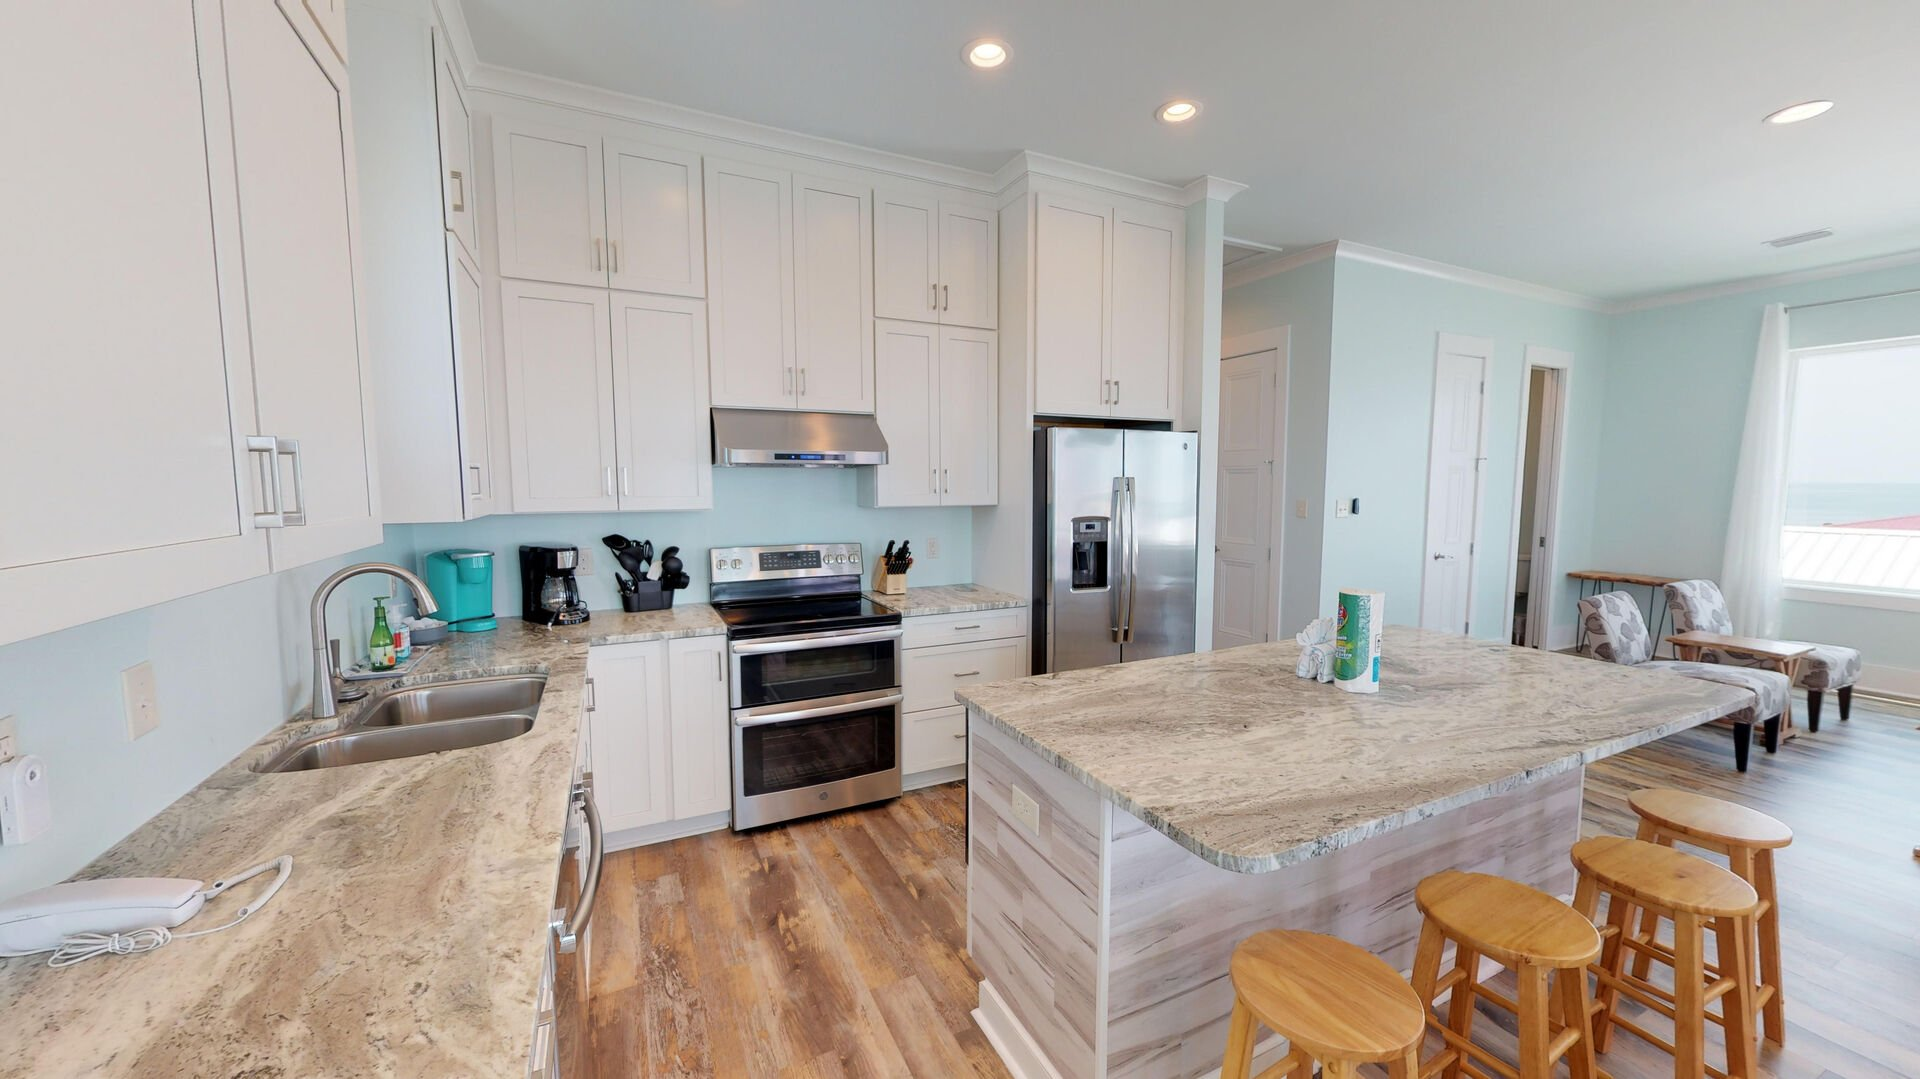 Gorgeous, fully-equipped kitchen with beautiful counter tops and modern appliances.